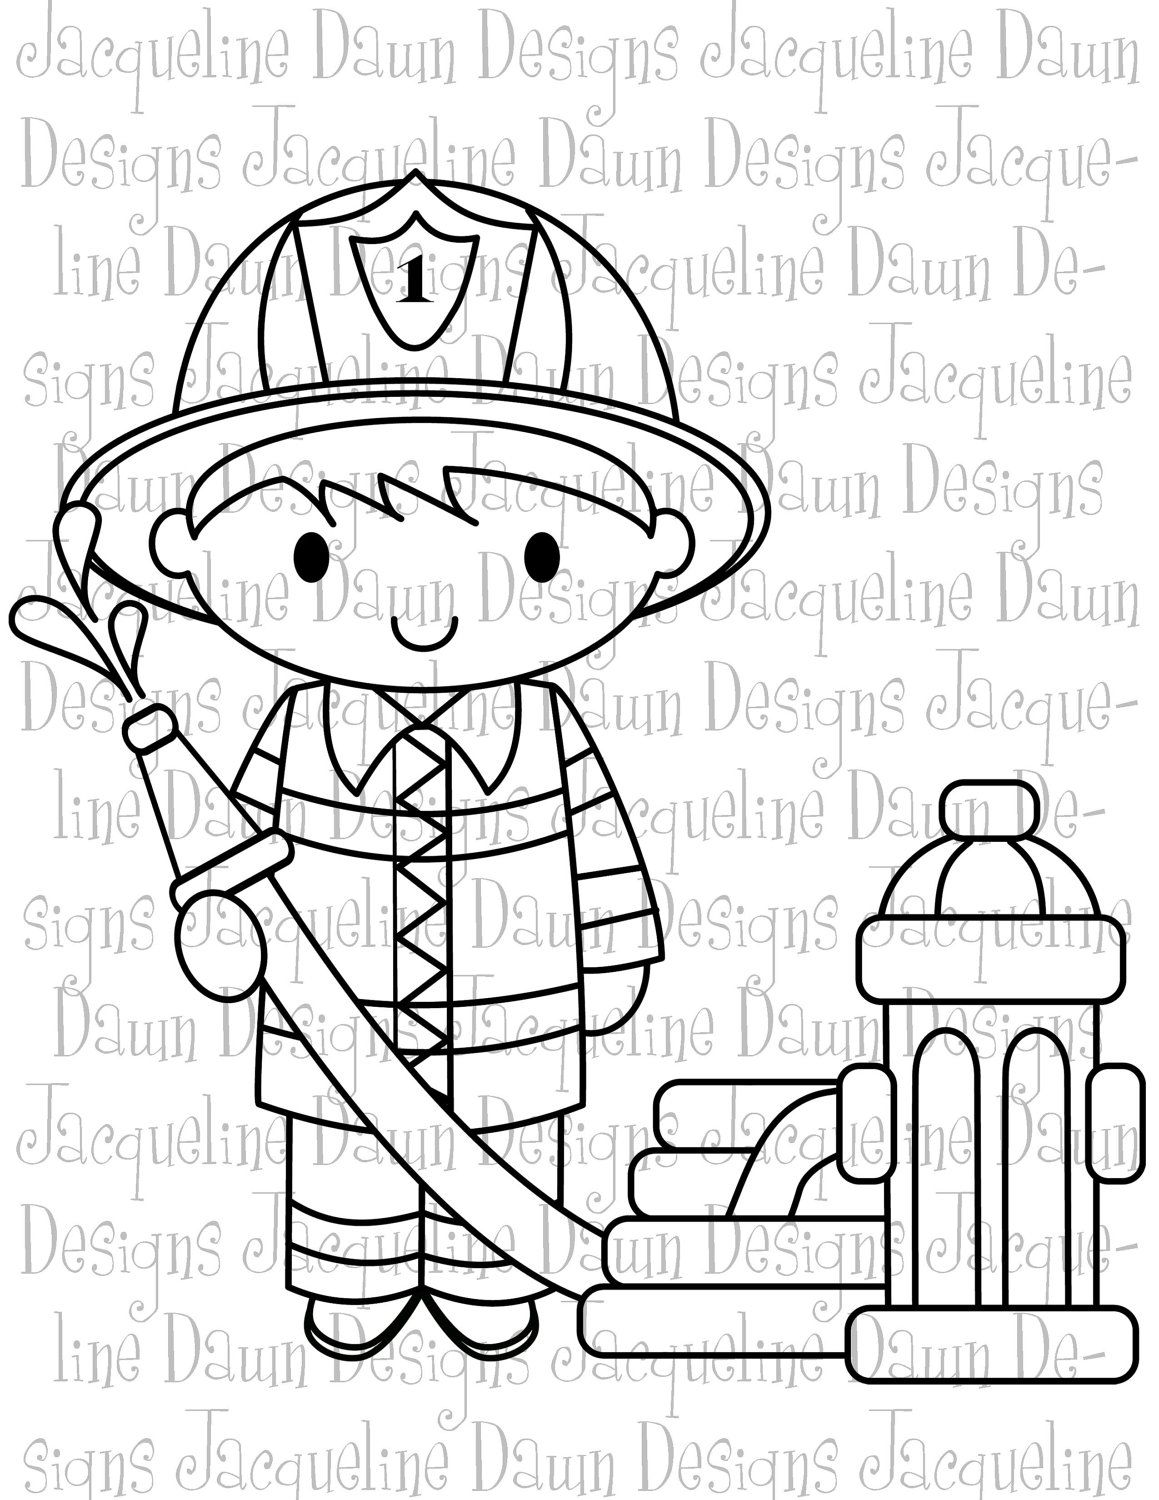 Firefighter Coloring Pages Digital Stamps Coloring Pages Dinosaur Coloring Pages